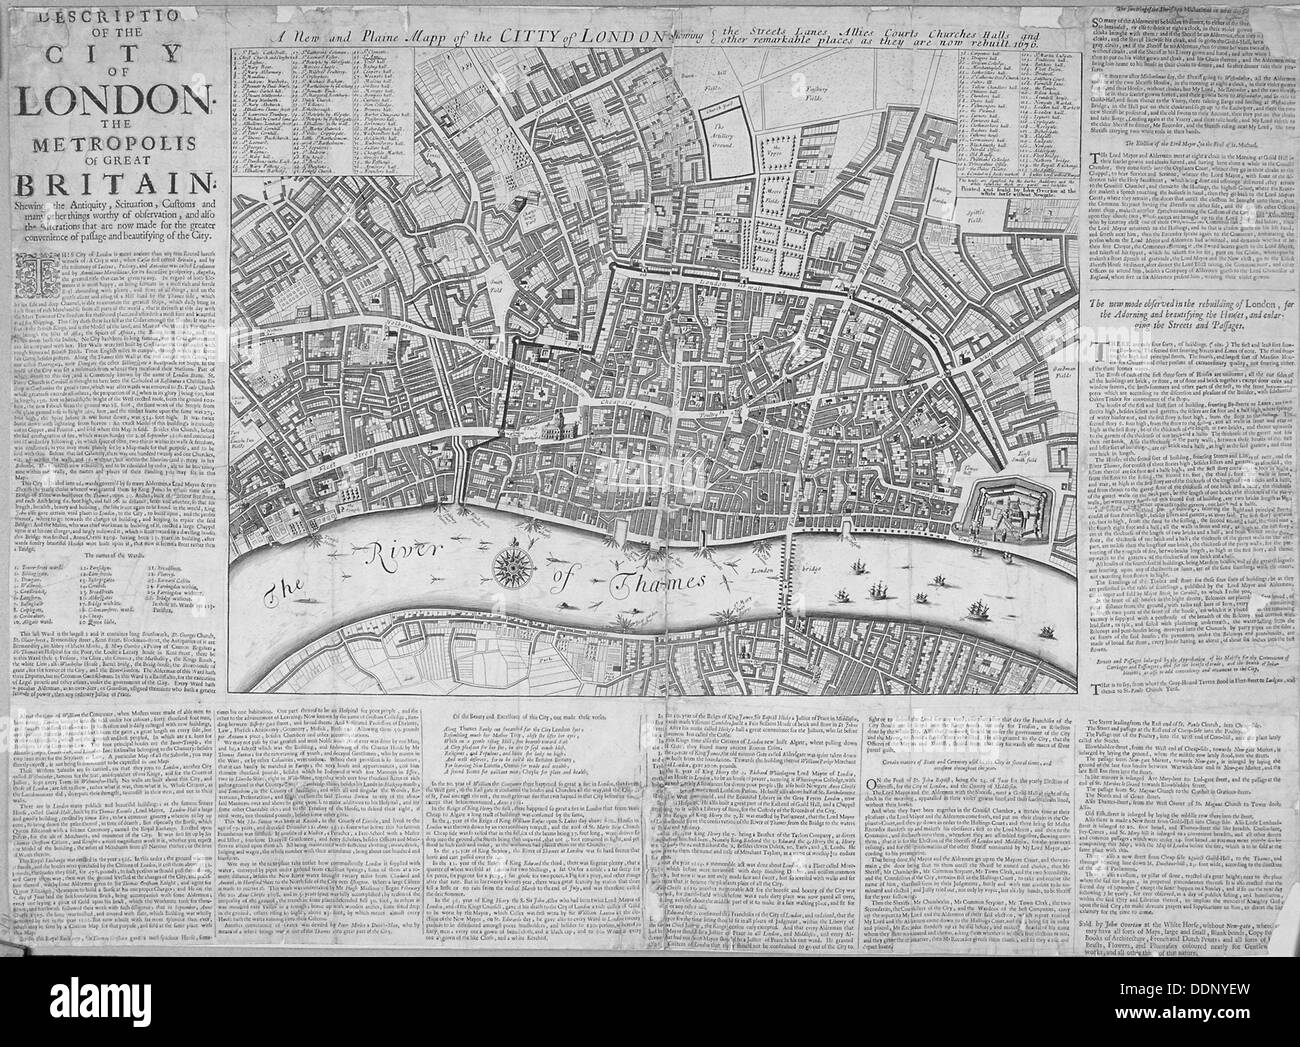 Map of the City of London surrounded by descriptive text, 1676. Artist: Anon - Stock Image